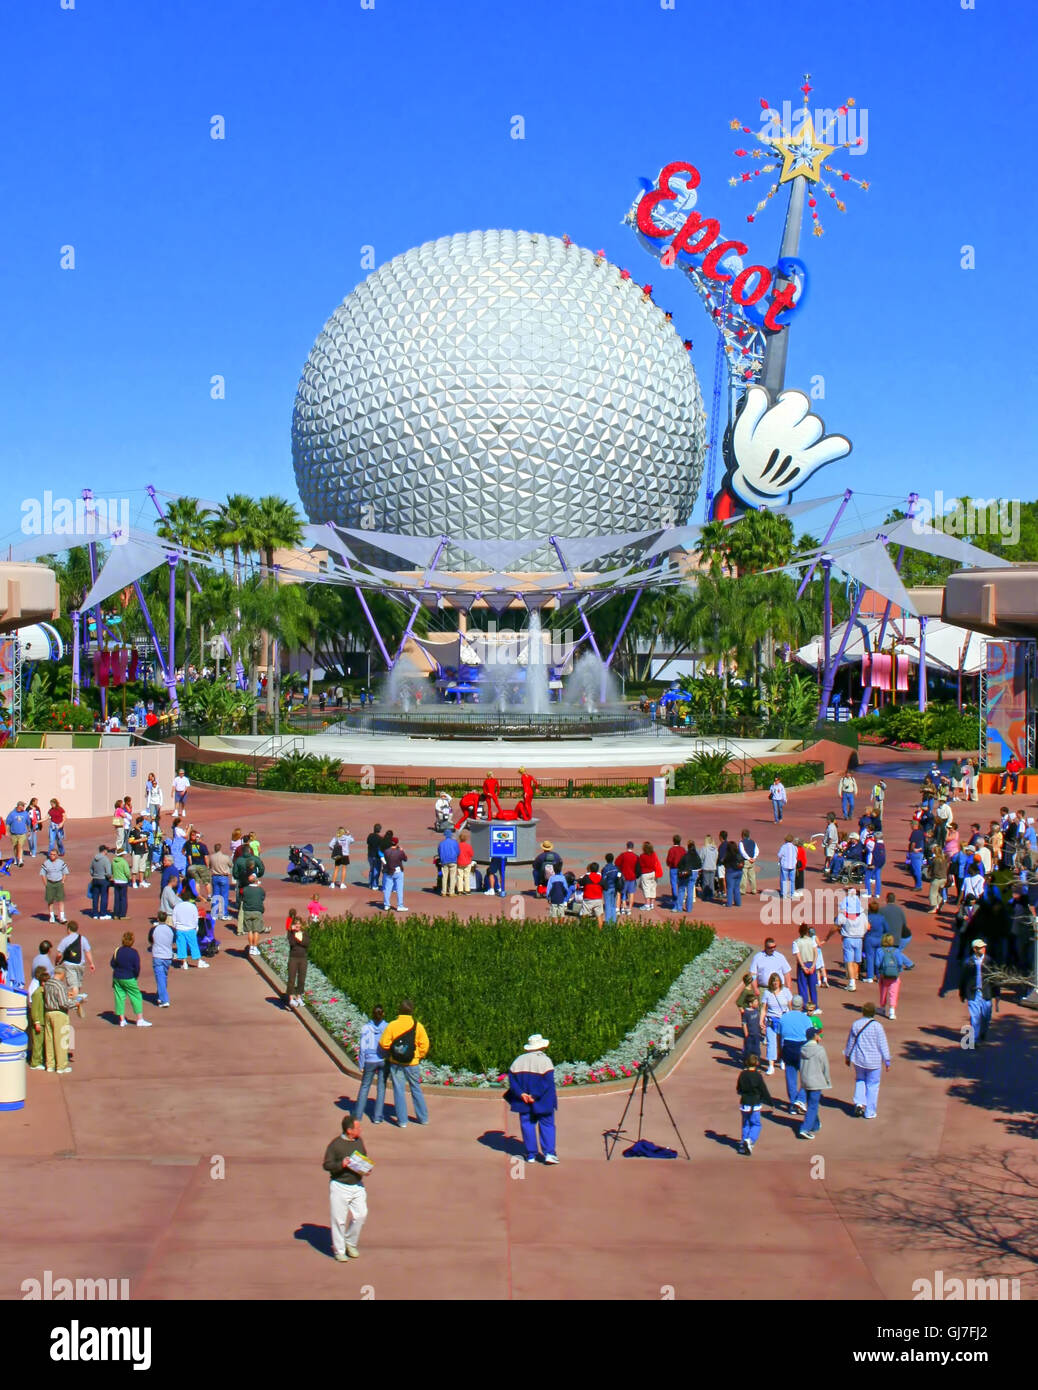 Orlando, Florida, USA. January 31th, 2006. A view of Epcot including Spaceship Earth from the monorail - Stock Image